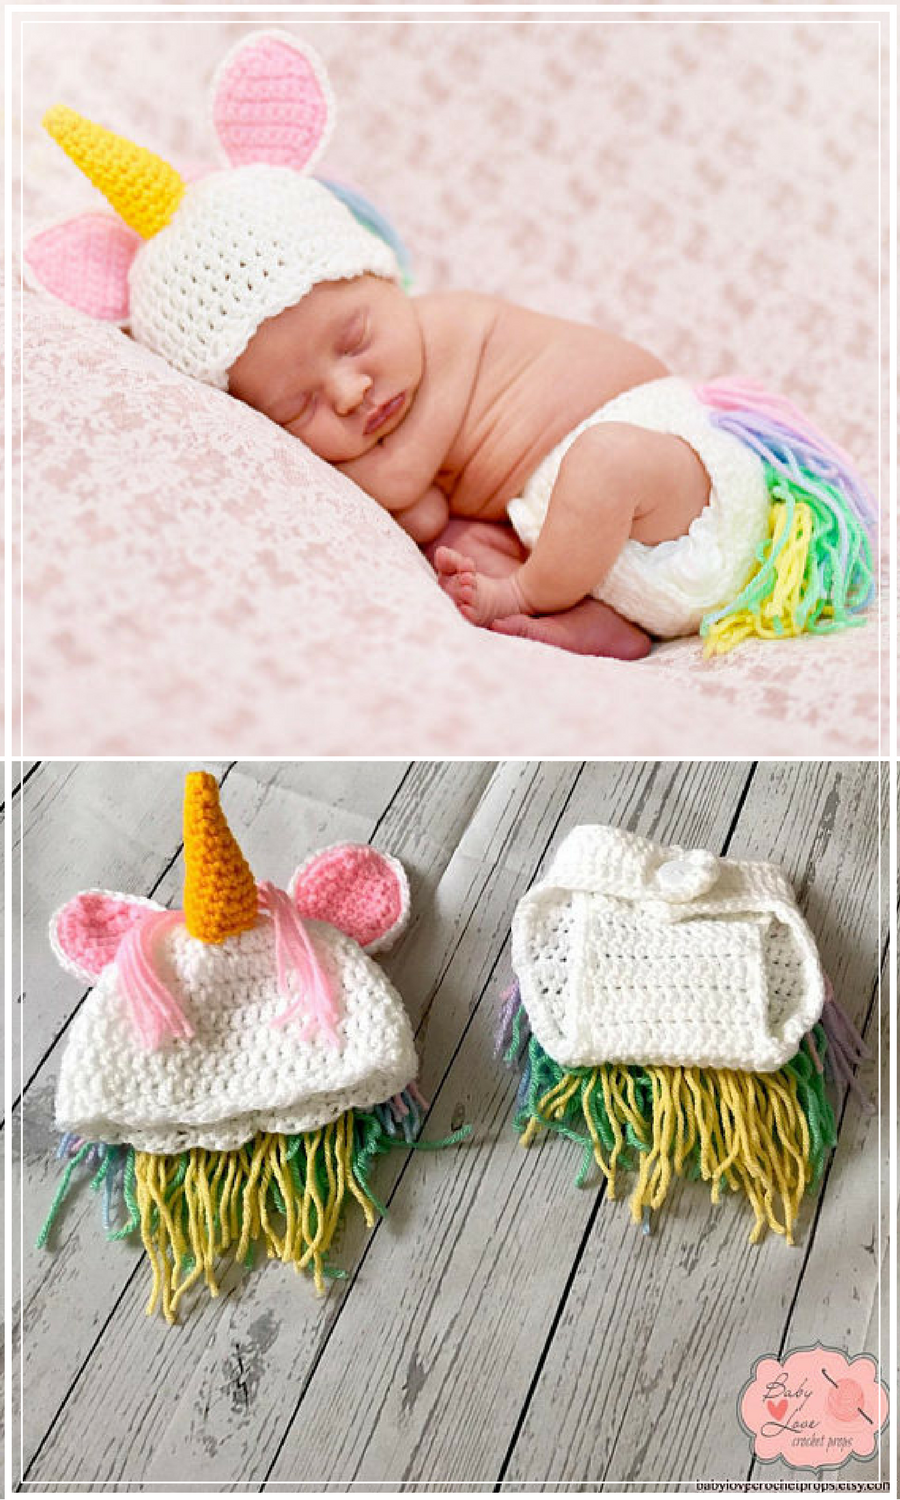 Crochet Unicorn Newborn Baby Girls Photo Photography Props Knitted Infant Hats